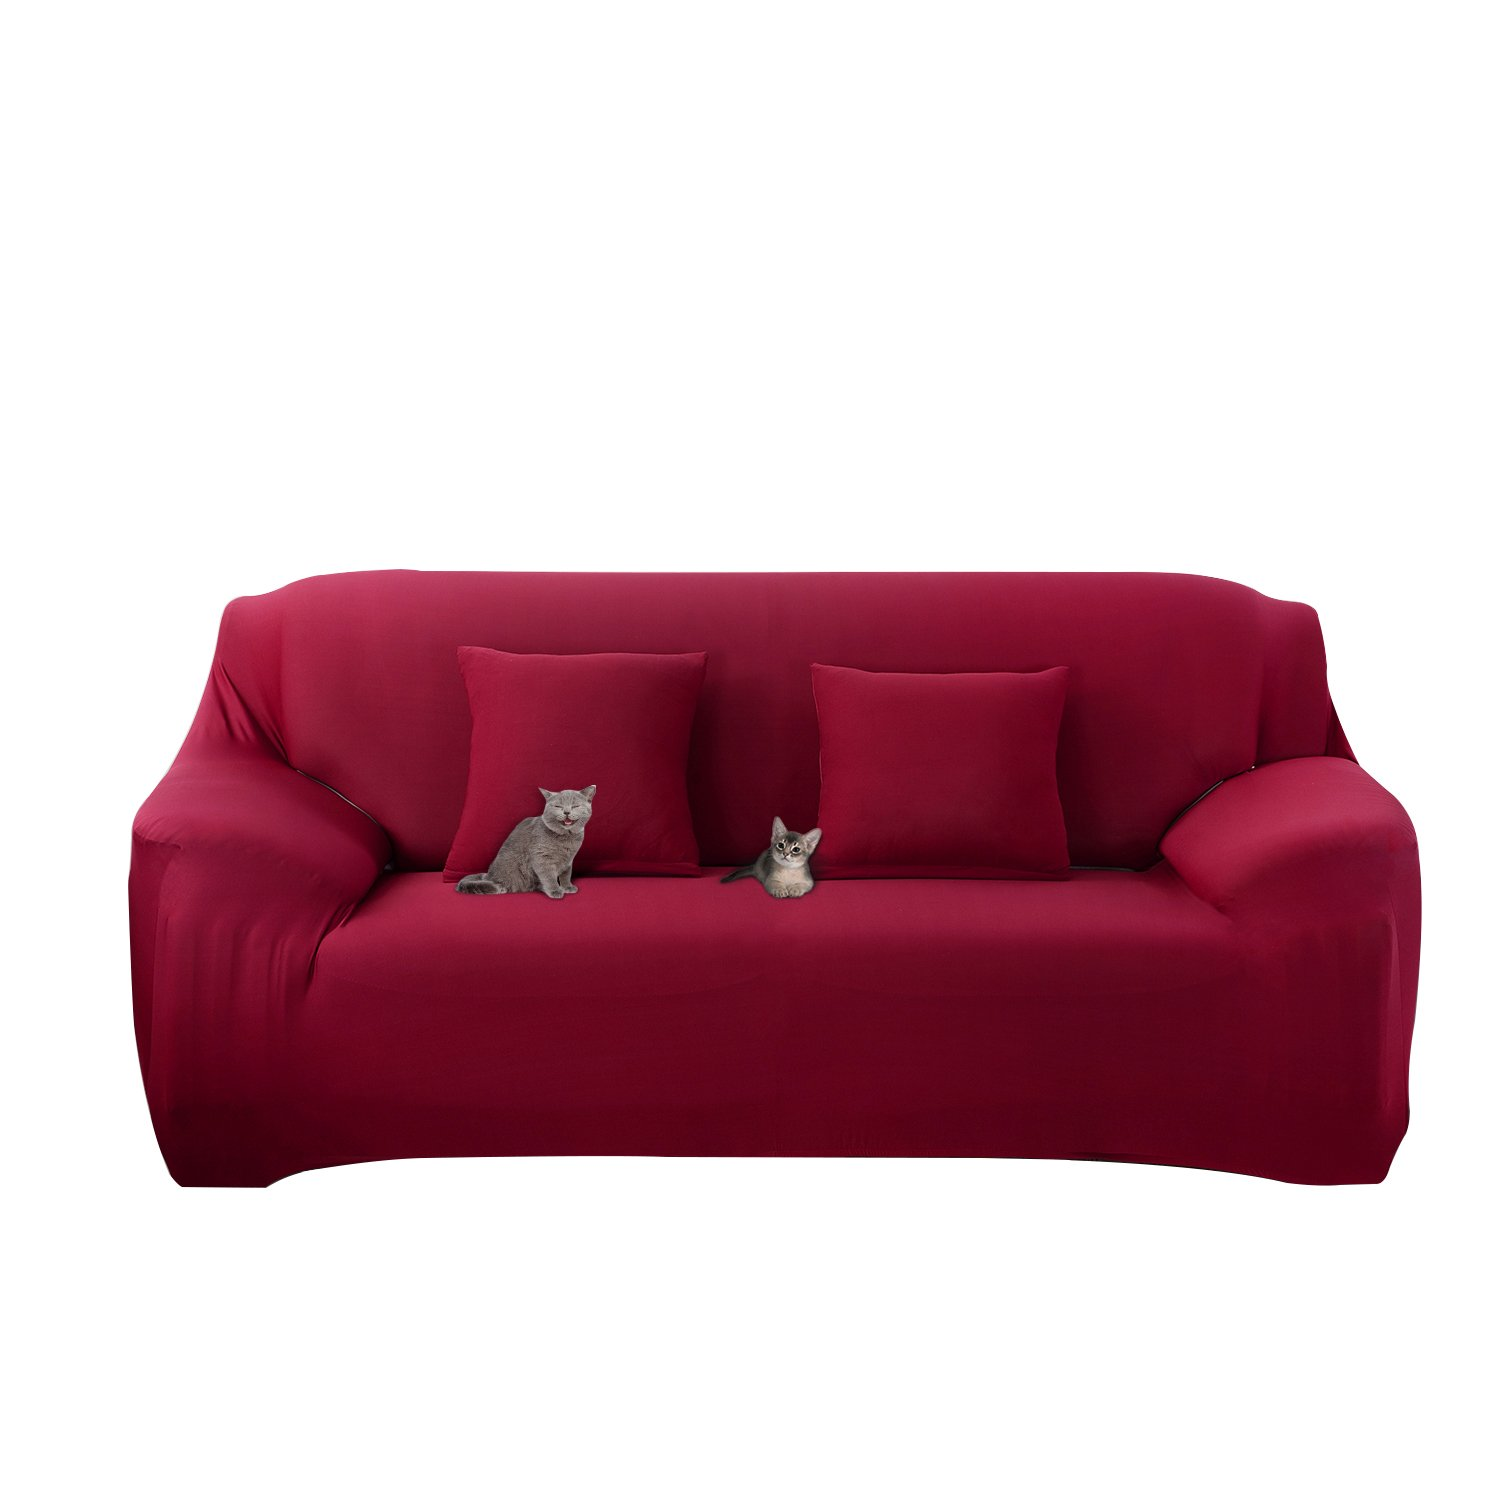 Mobo Red Sofa Cover - 1-Piece Slipcover for 57-72 Inches Loveseat - Stretch  Elastic couch cover with Polyester Spandex Fabric